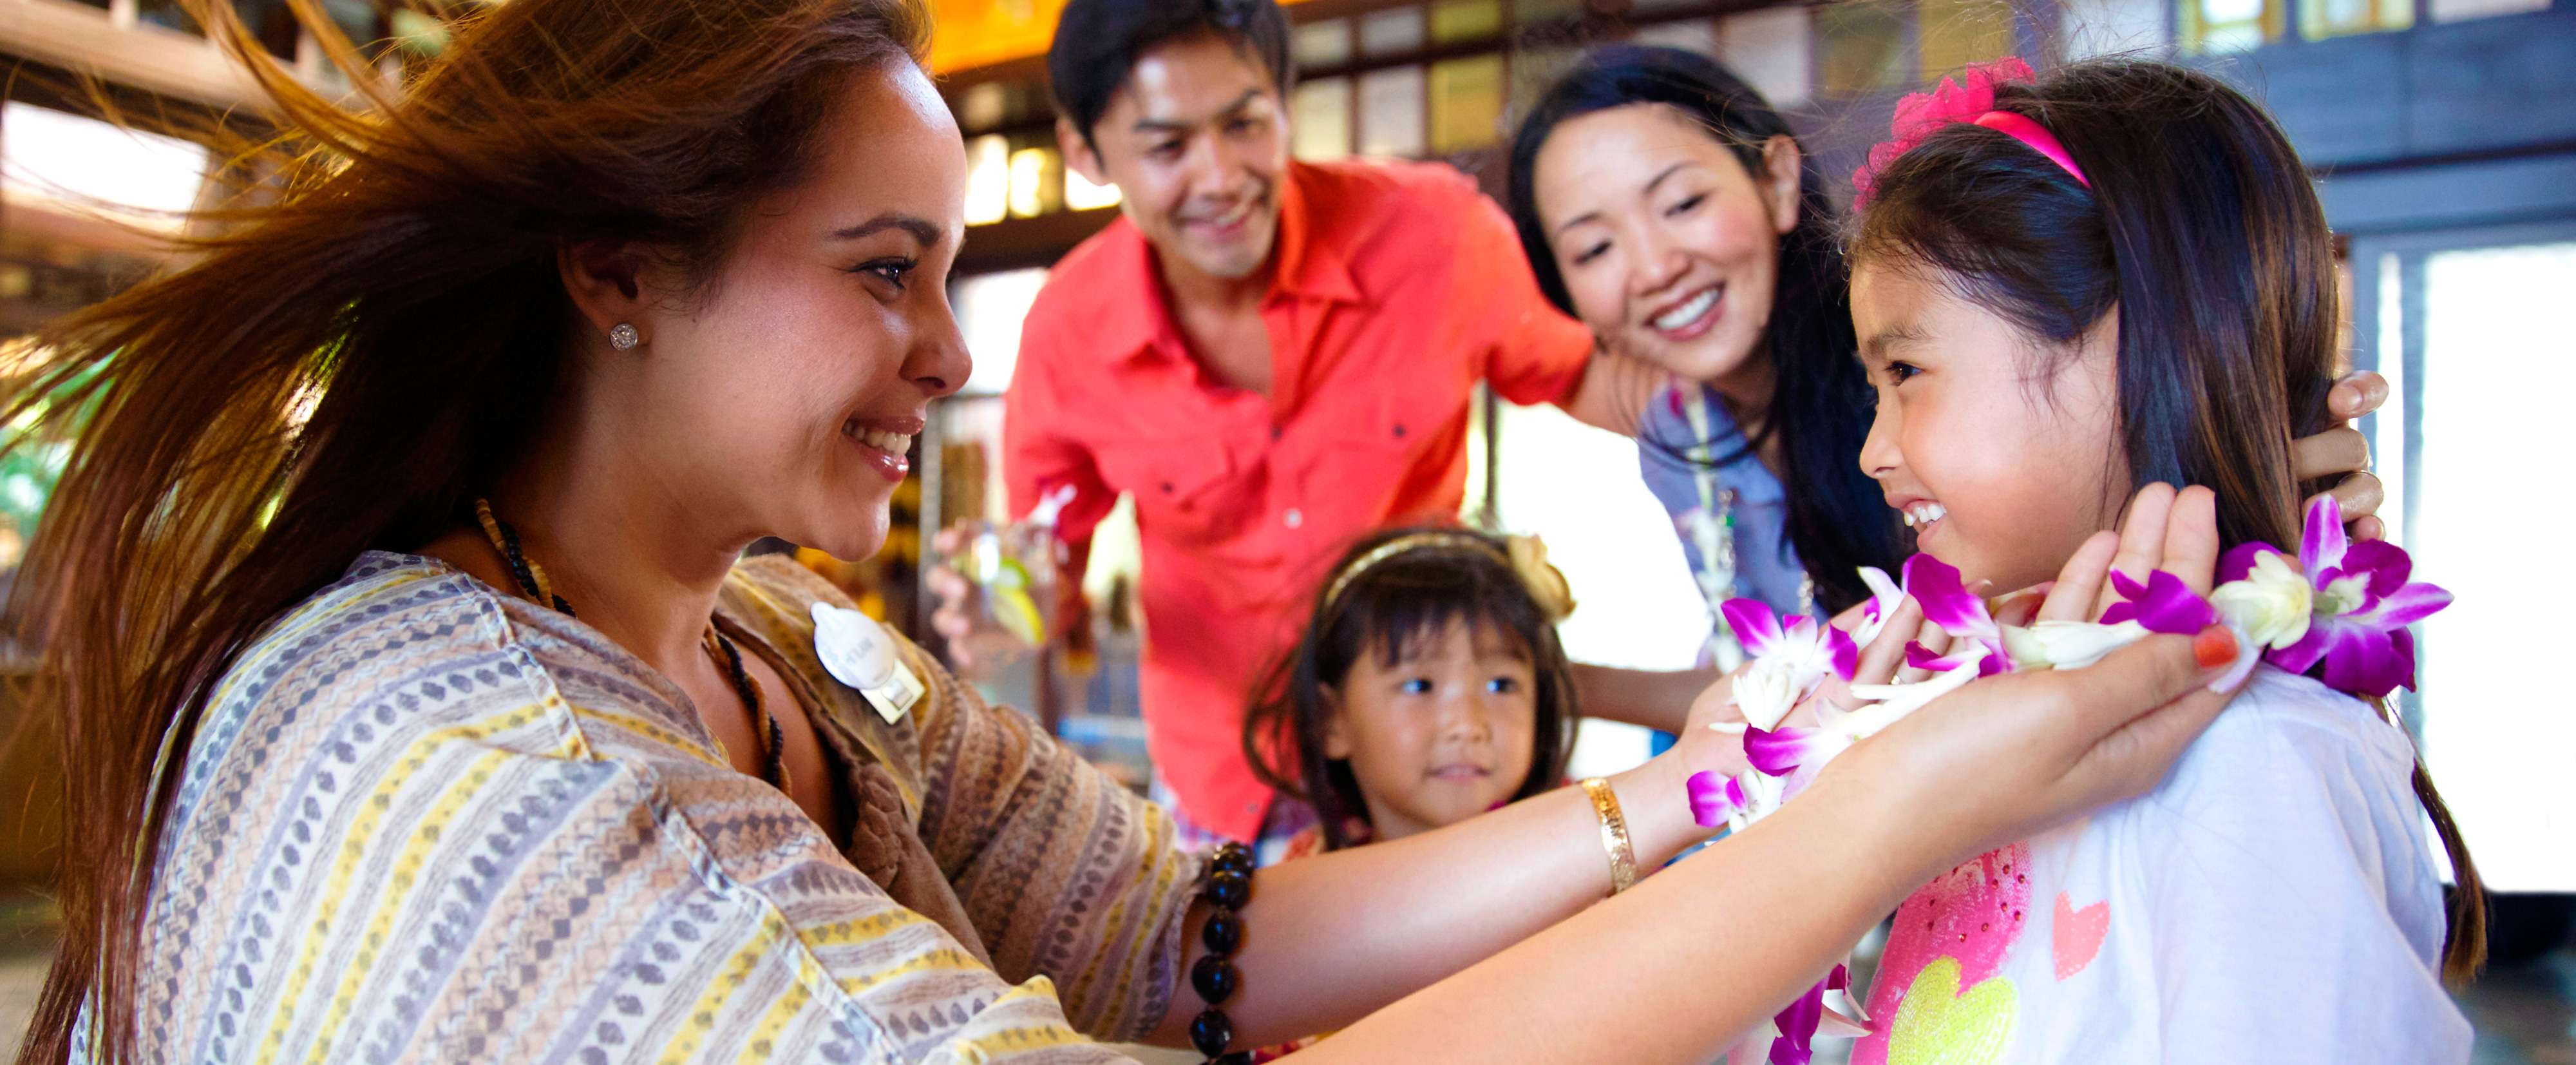 A family receives leis in the Lobby at Aulani